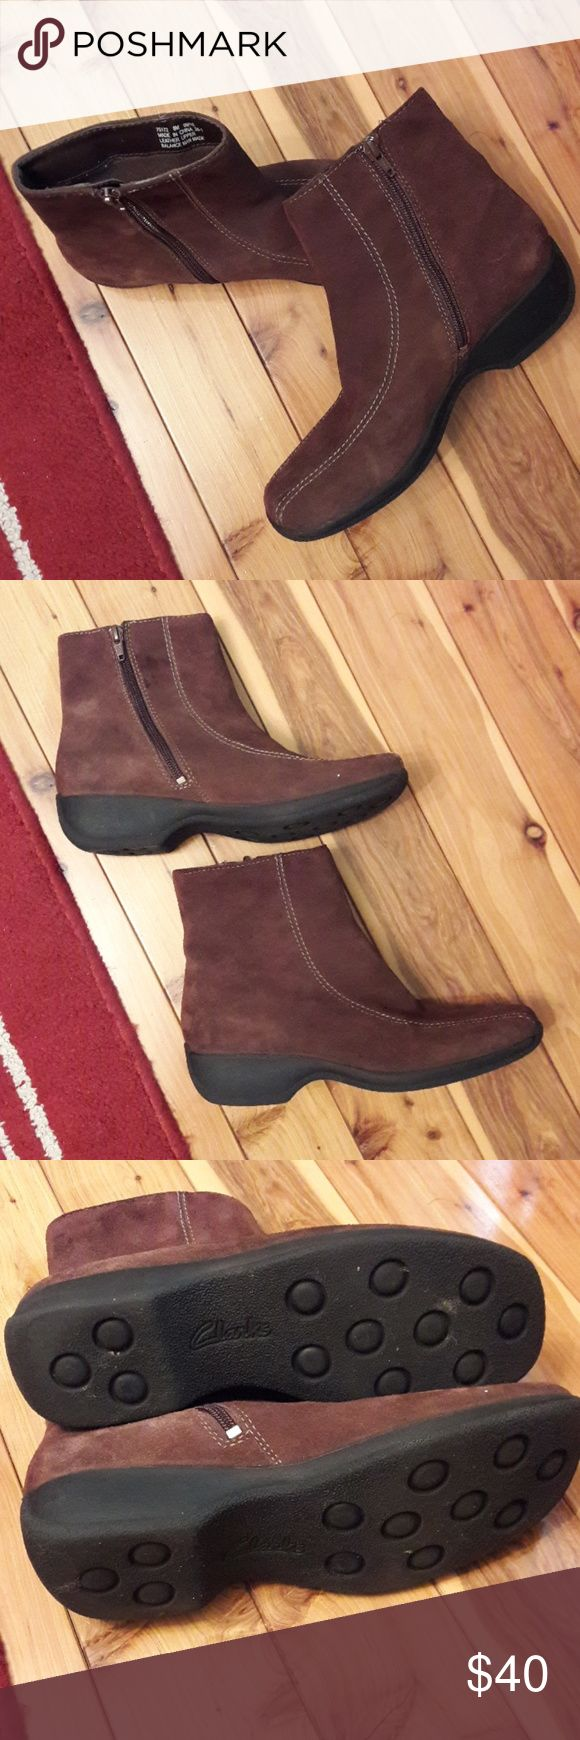 CLARK'S Brown Suede Ankle Boots, Size 8 In amazing shape with inly minor wear on bittom. Women's size 8 (True to size, 8/8.5) . Brown Suede book, flat. Please message me with any questions. Thank you. A Portion of sales are going toward disaster relief. Thank you. Clarks Shoes Ankle Boots & Booties